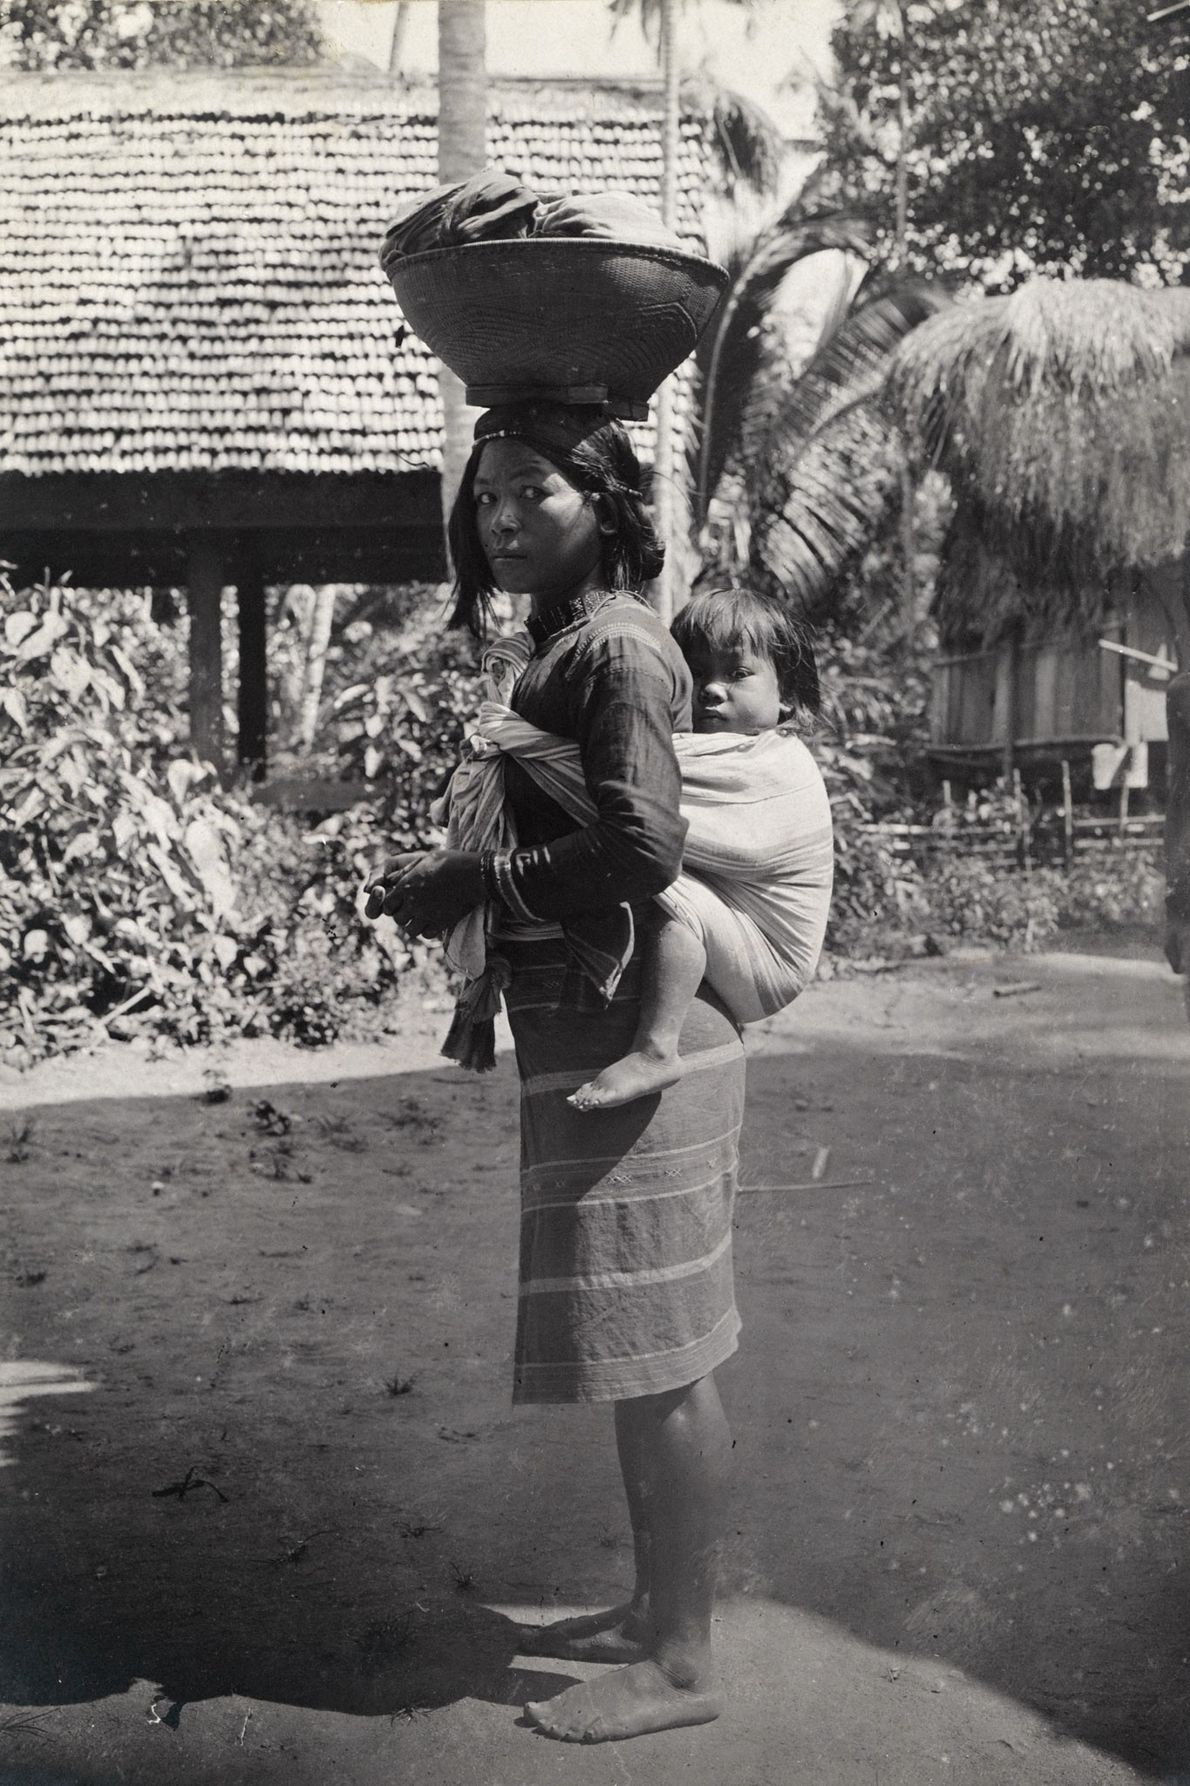 A Tingian woman carries a child on her back and balances a basket on her head ...